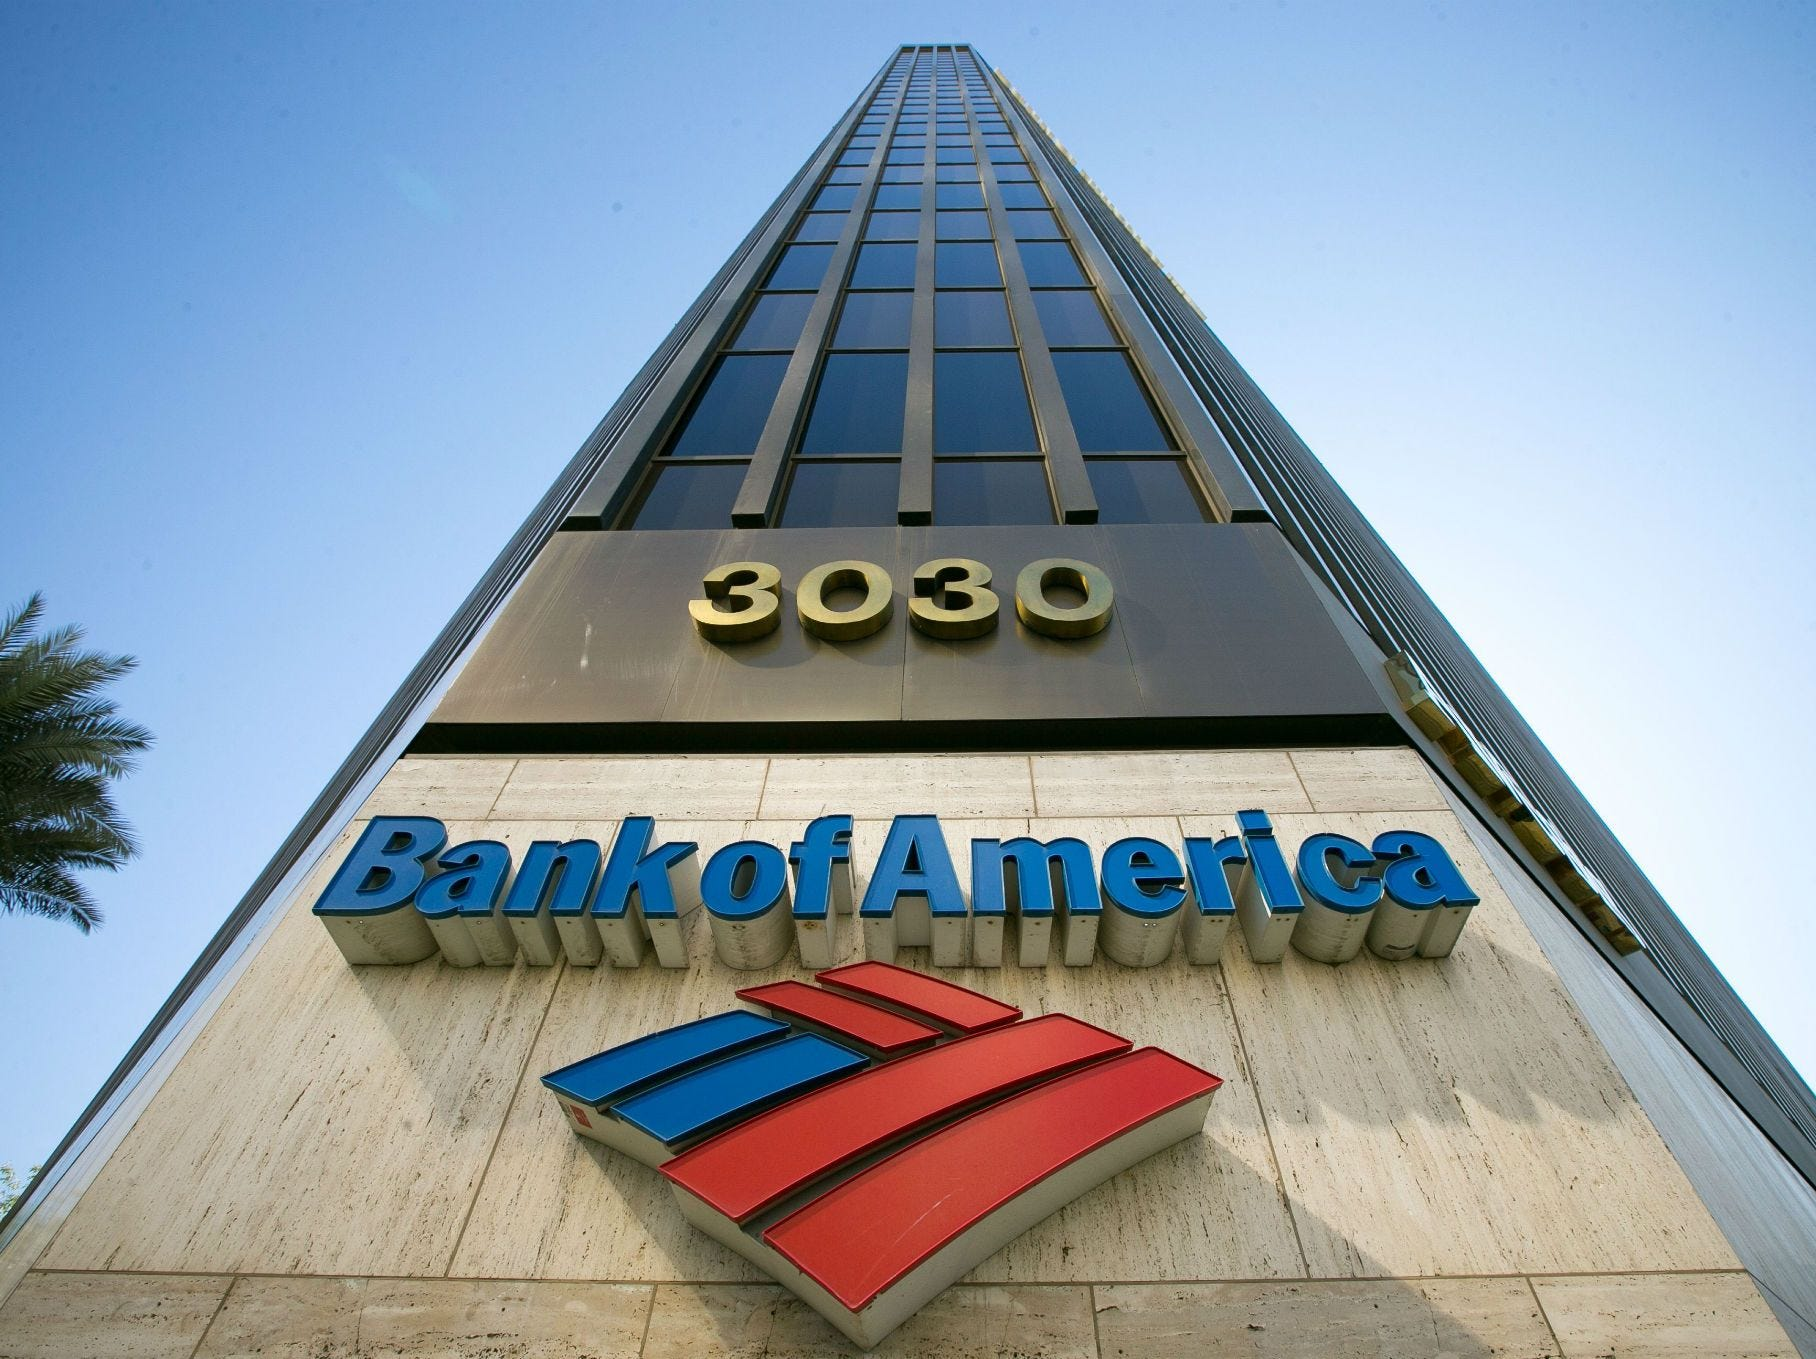 Bank of America Corp.   Banking, financial services   2019 employees: 9,200   2018 employees: 10,000   Ownership: Public   Headquarters: Charlotte, North Carolina   www.bankofamerica.com